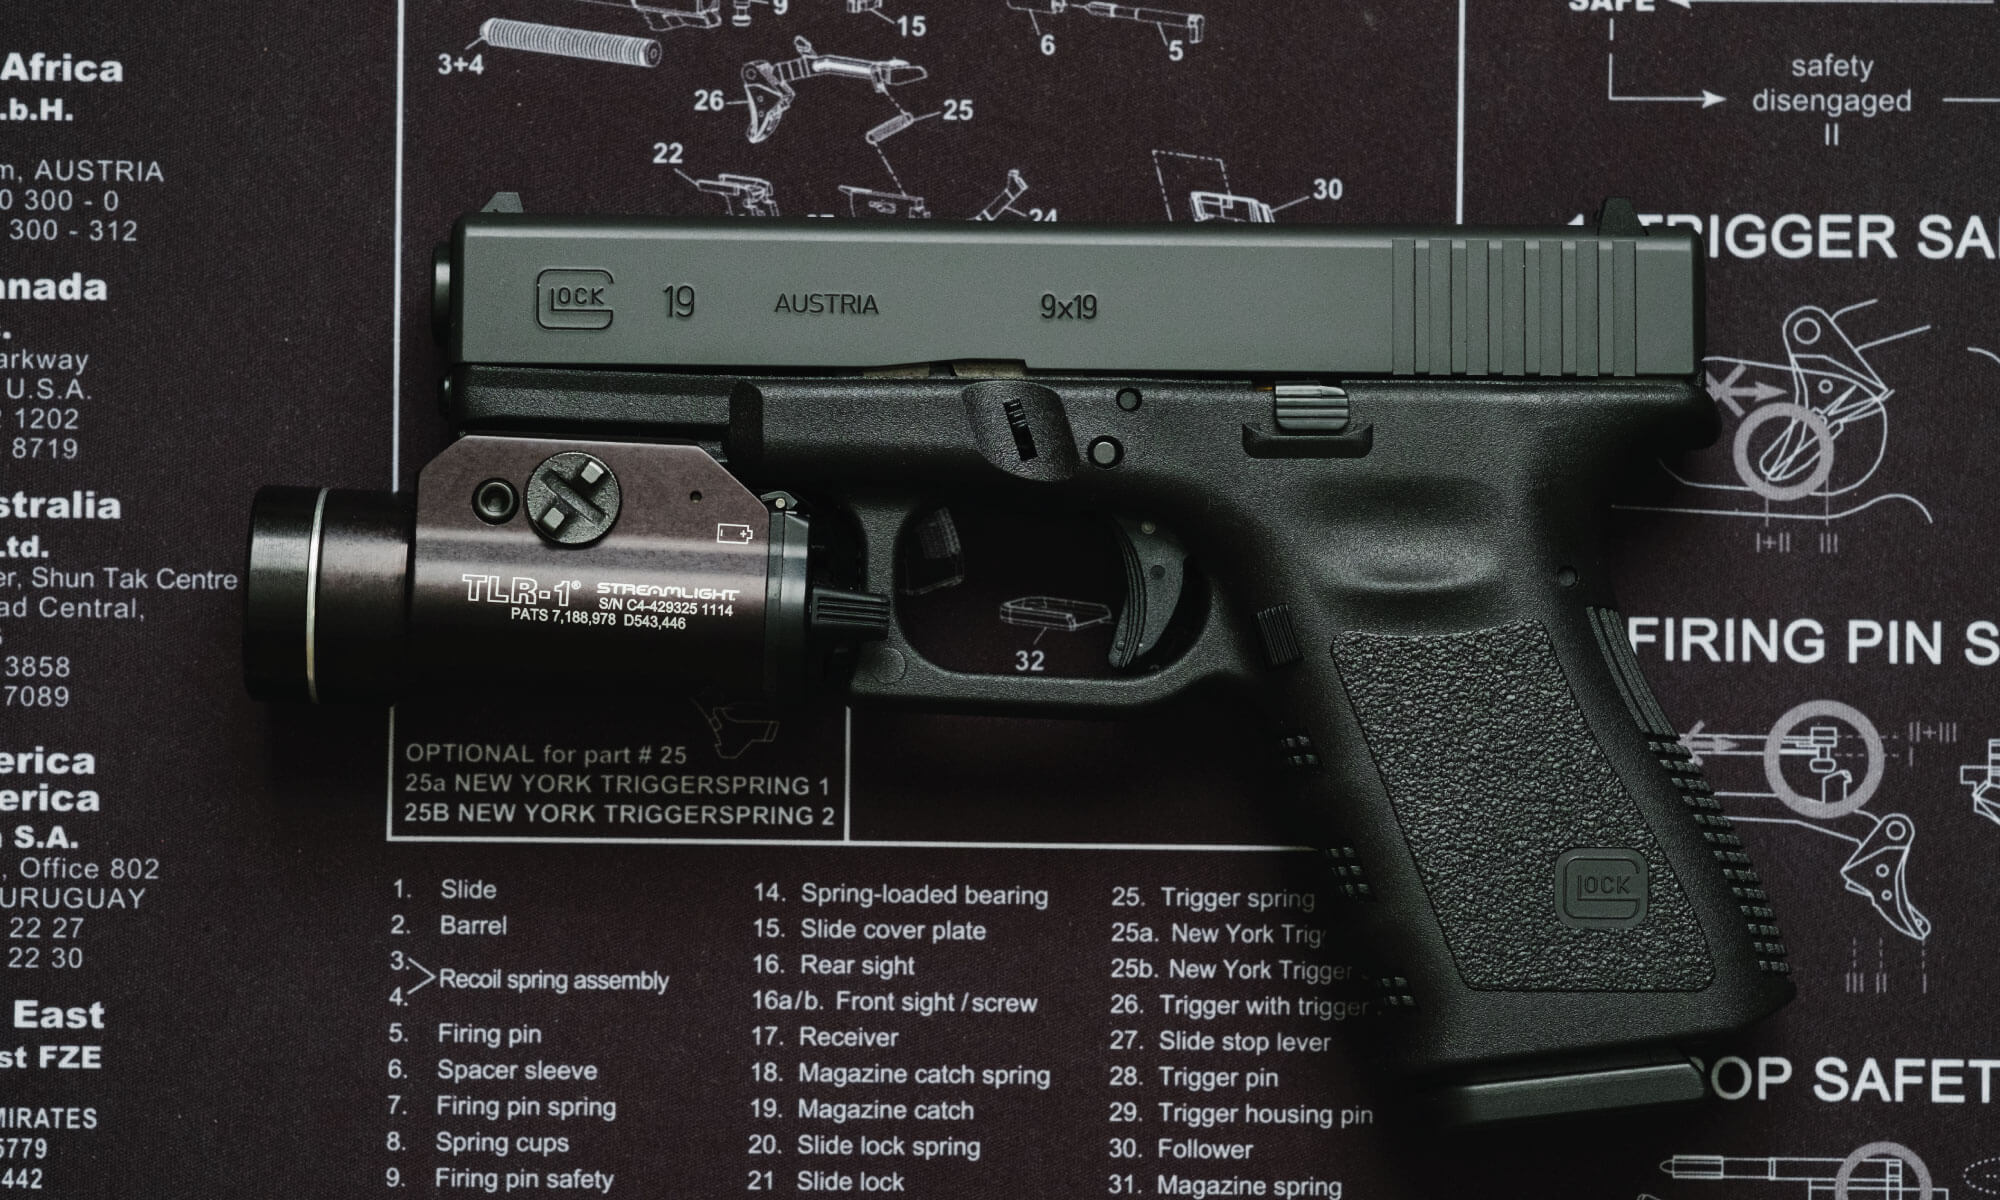 Go to Glock website